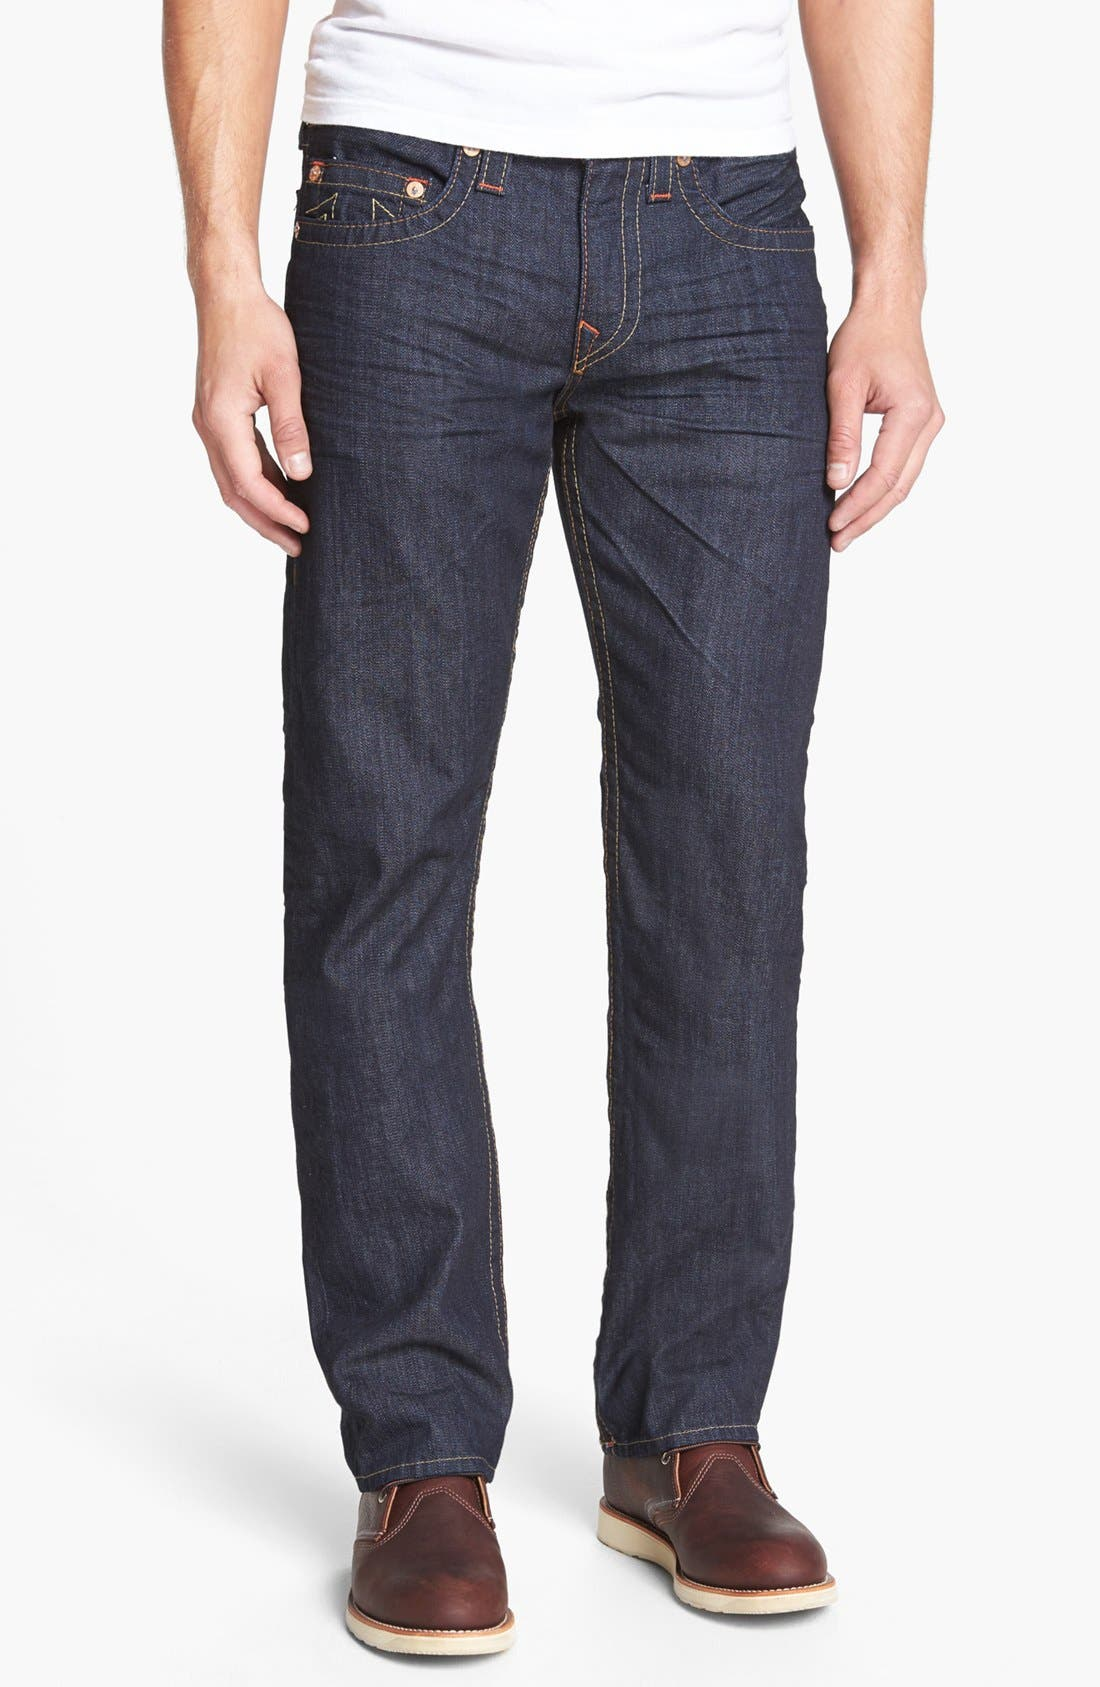 Alternate Image 2  - True Religion Brand Jeans 'Bobby' Straight Leg Jeans (Bz Inglorious)